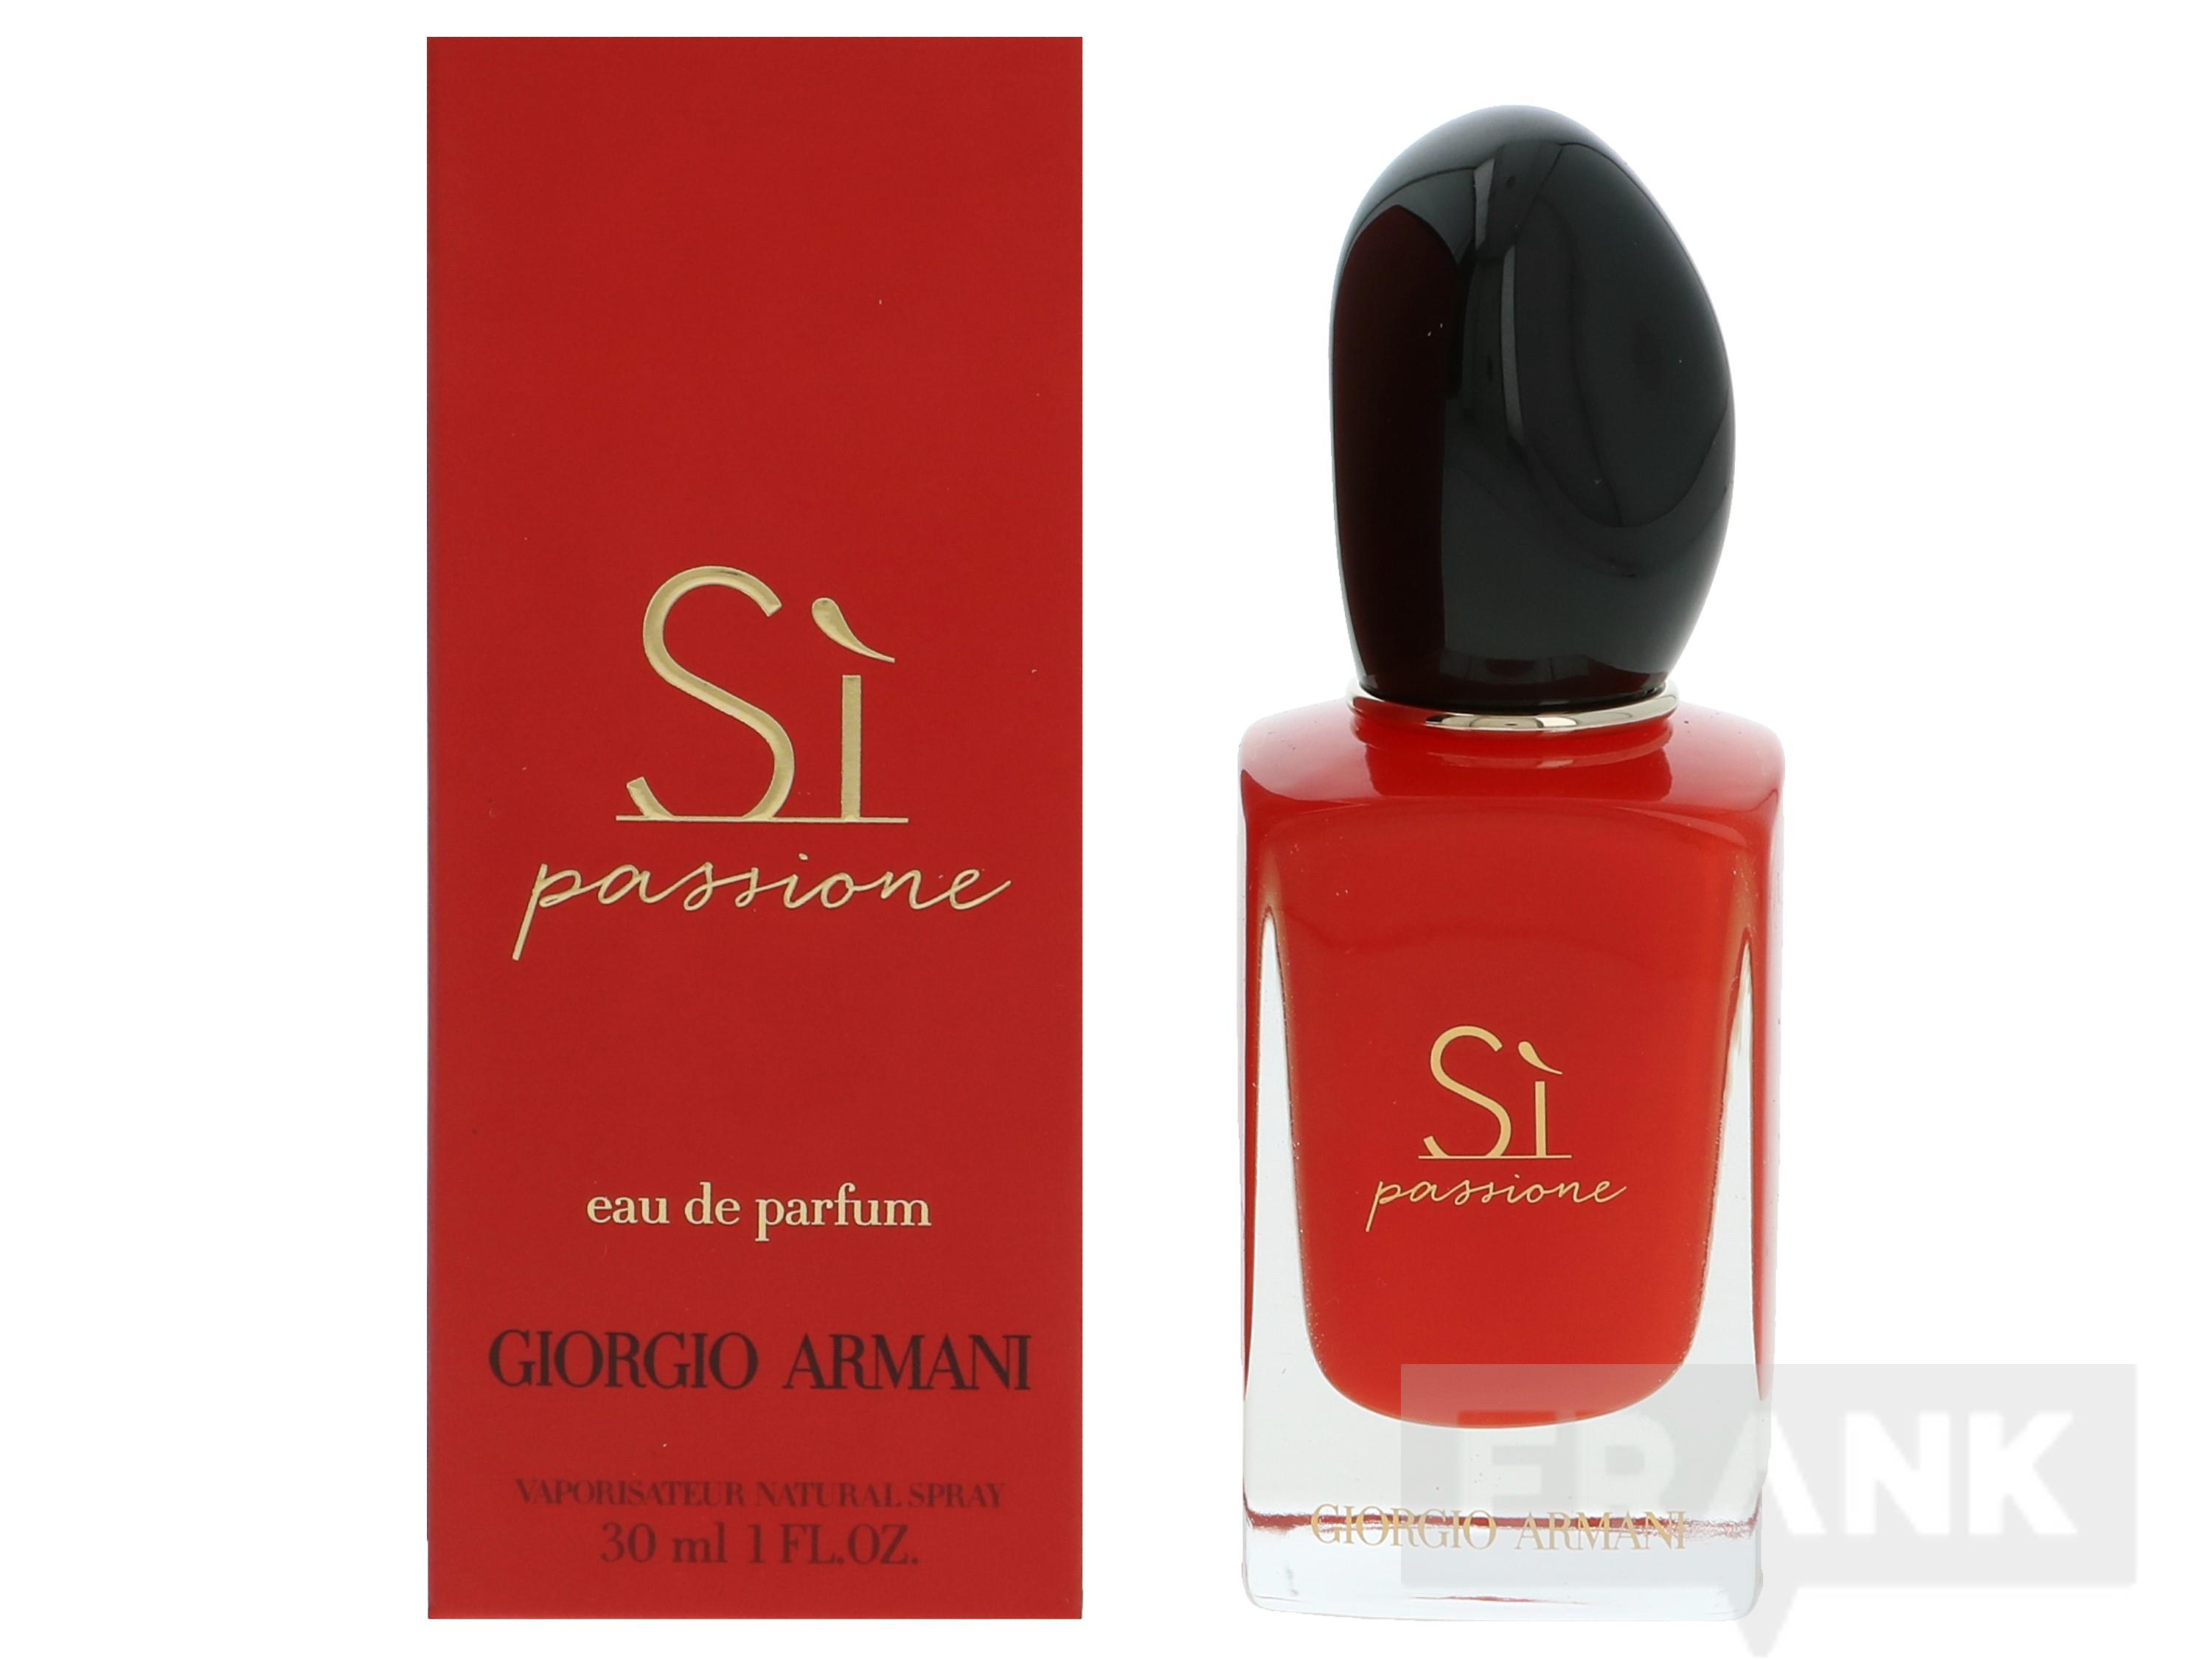 Armani Si Passione Edp Spray